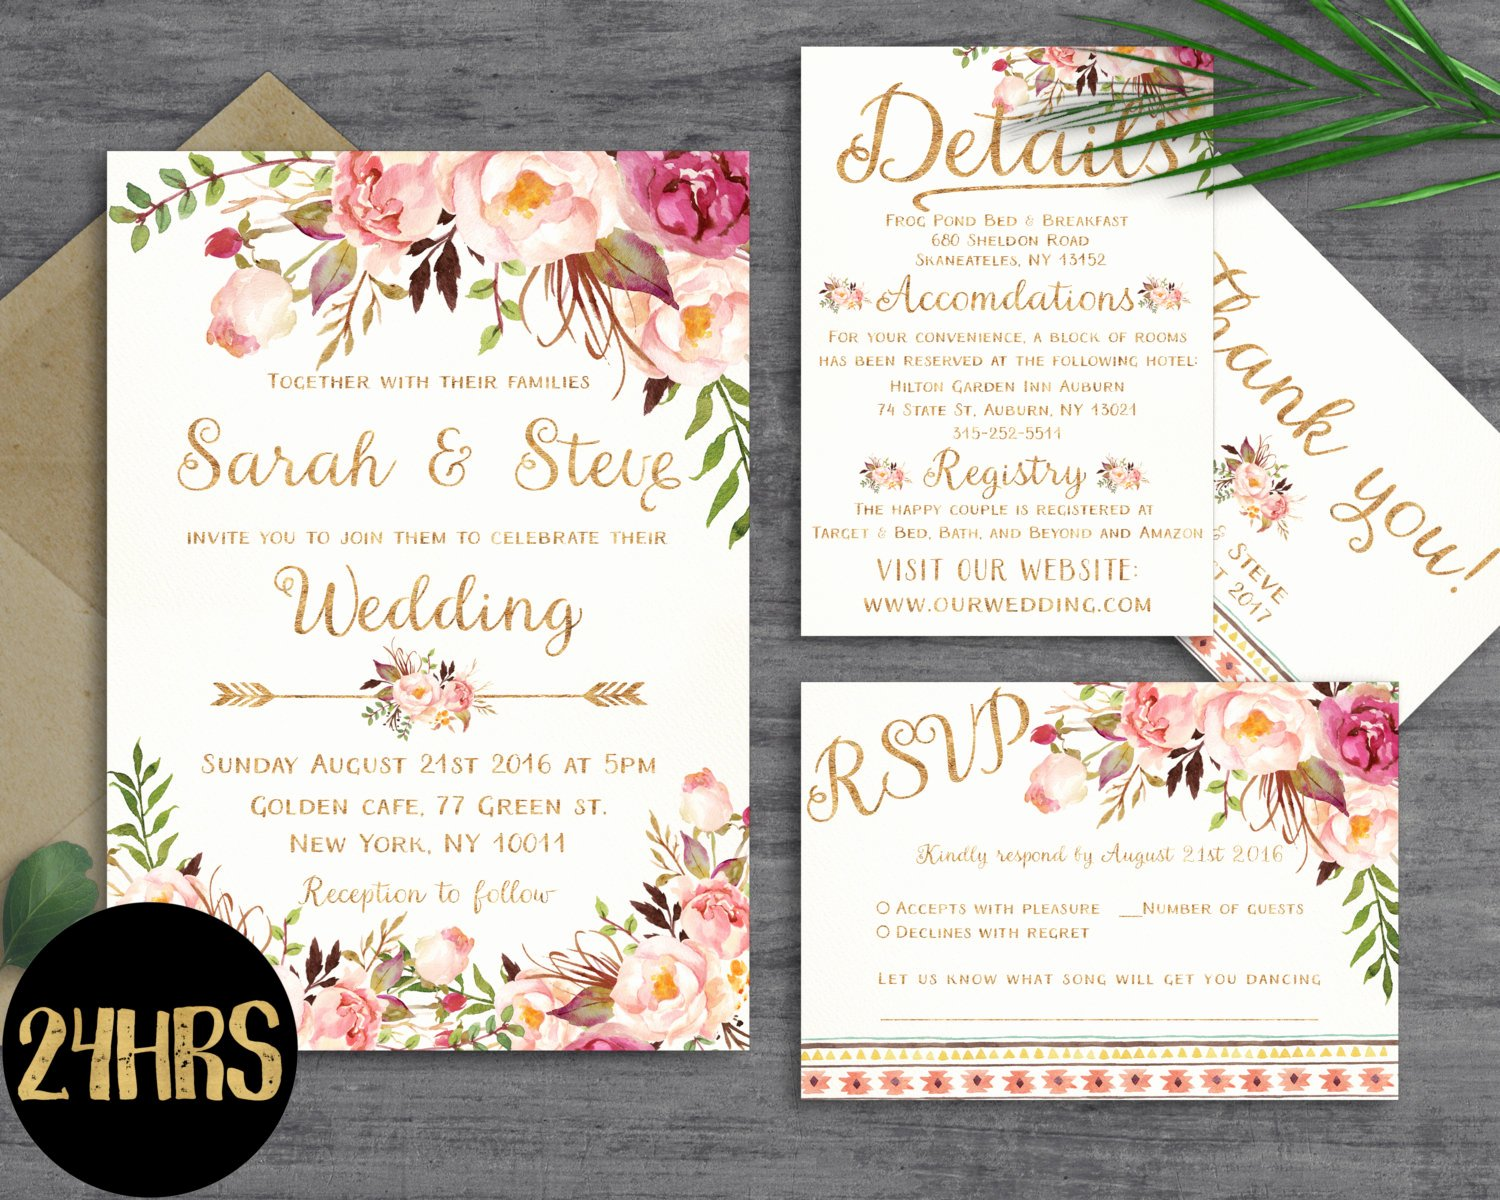 Template for Wedding Invitations Unique Floral Wedding Invitation Template Wedding Invitation